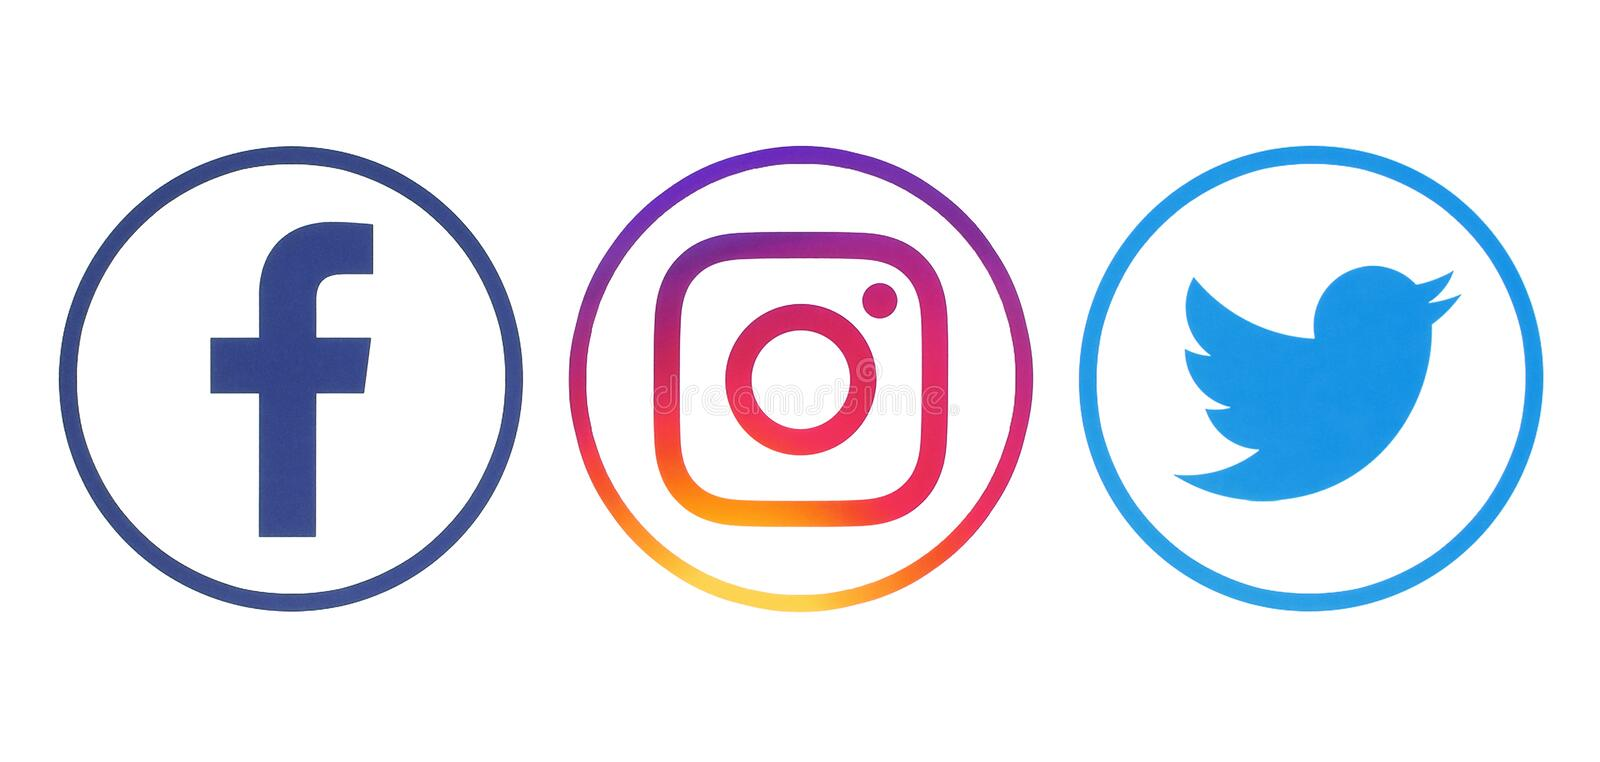 Facebook, Twitter and Instagram logos royalty free stock image